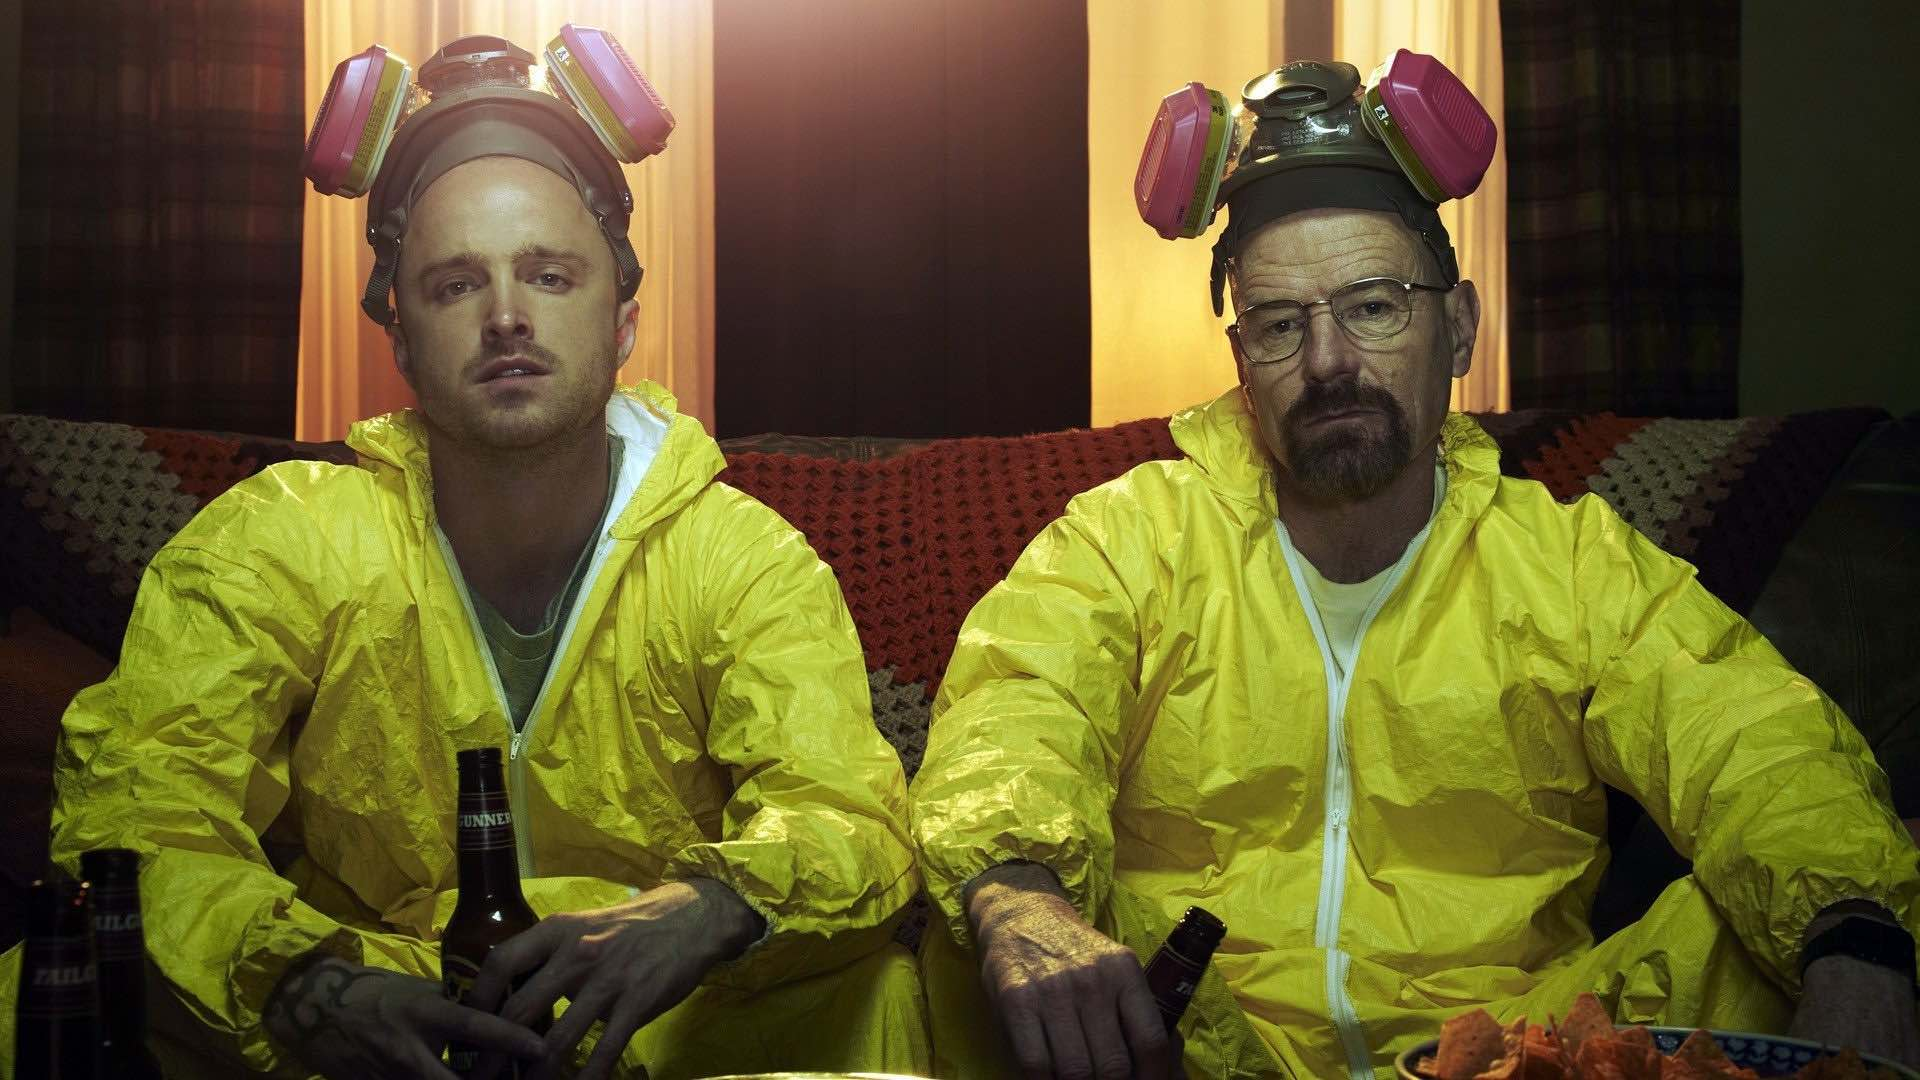 Breaking Bad: il film di Vince Gilligan sarà distribuito su Netflix!